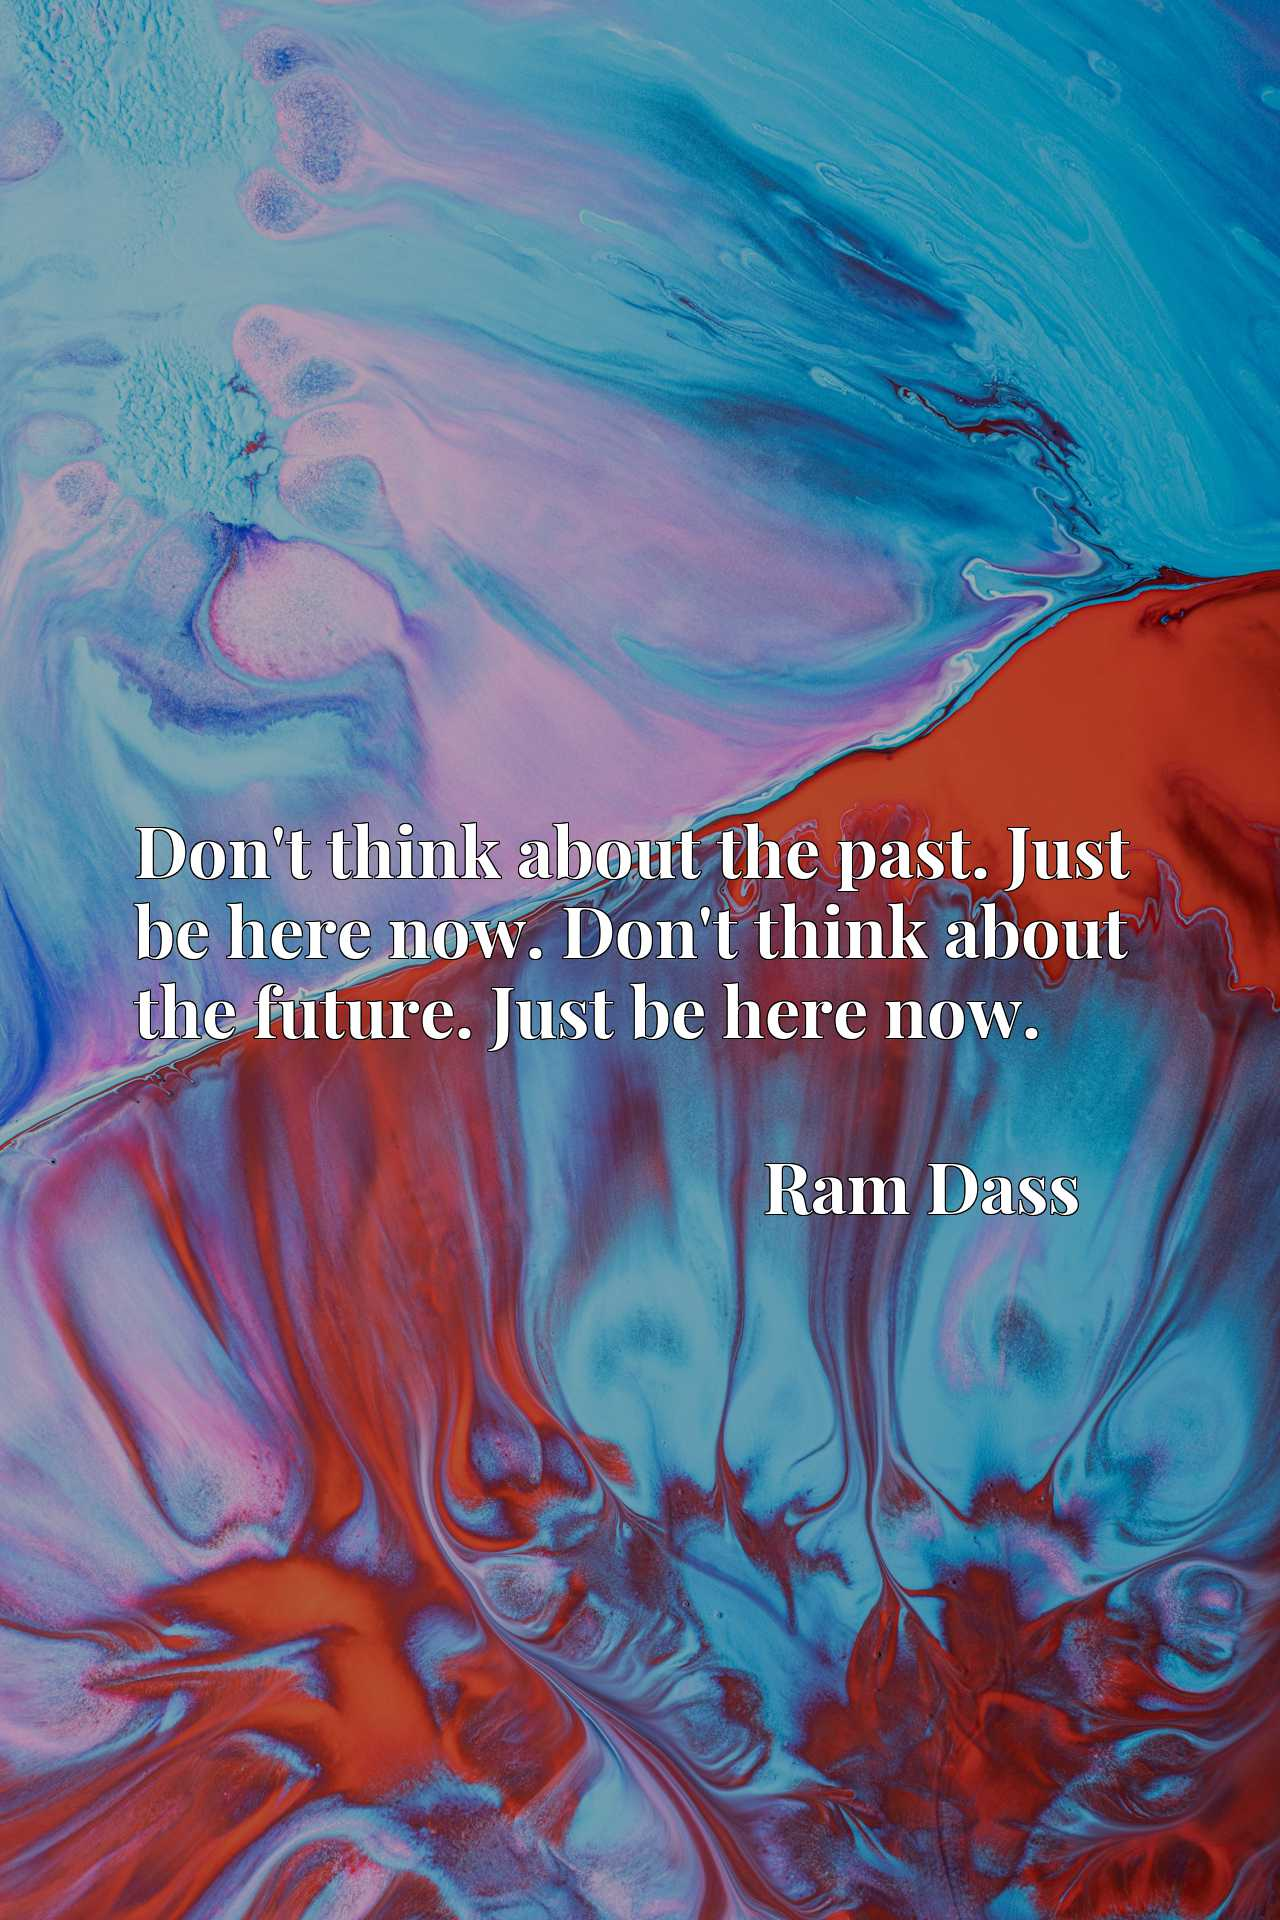 Don't think about the past. Just be here now. Don't think about the future. Just be here now.